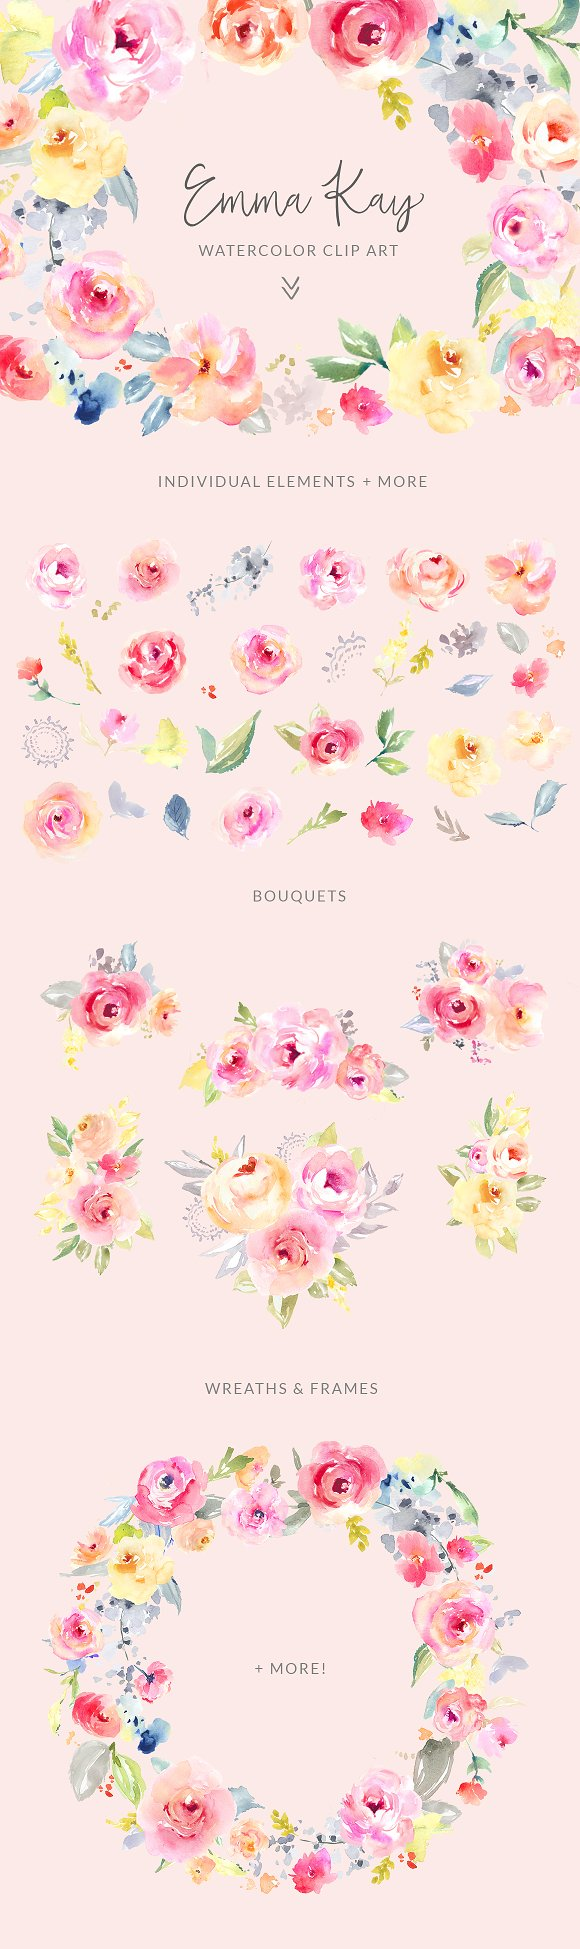 Watercolor flowers png clipart illustrations on creative market - Emma Kay Watercolor Clip Art Flower Illustrations